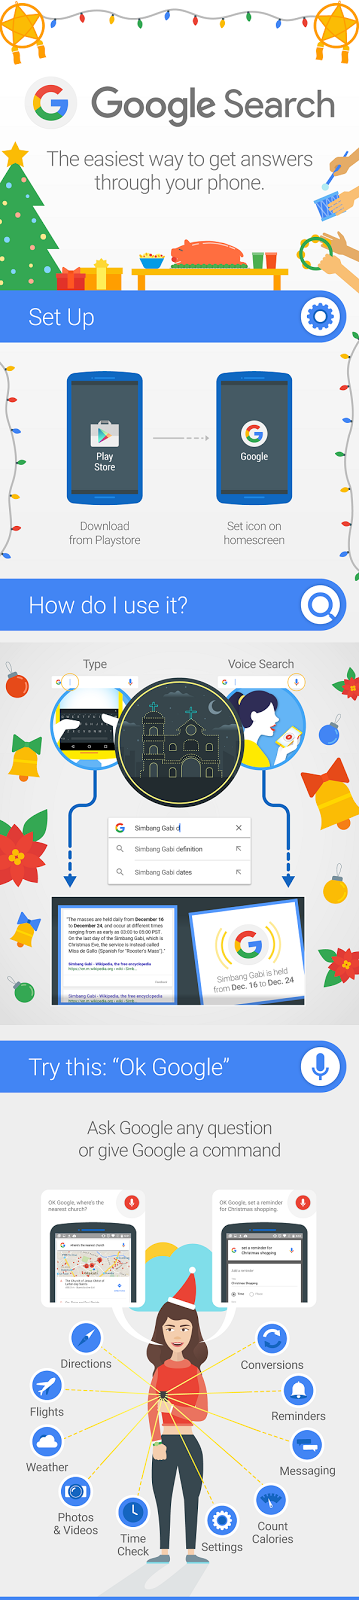 Google Apps Infographic - Search